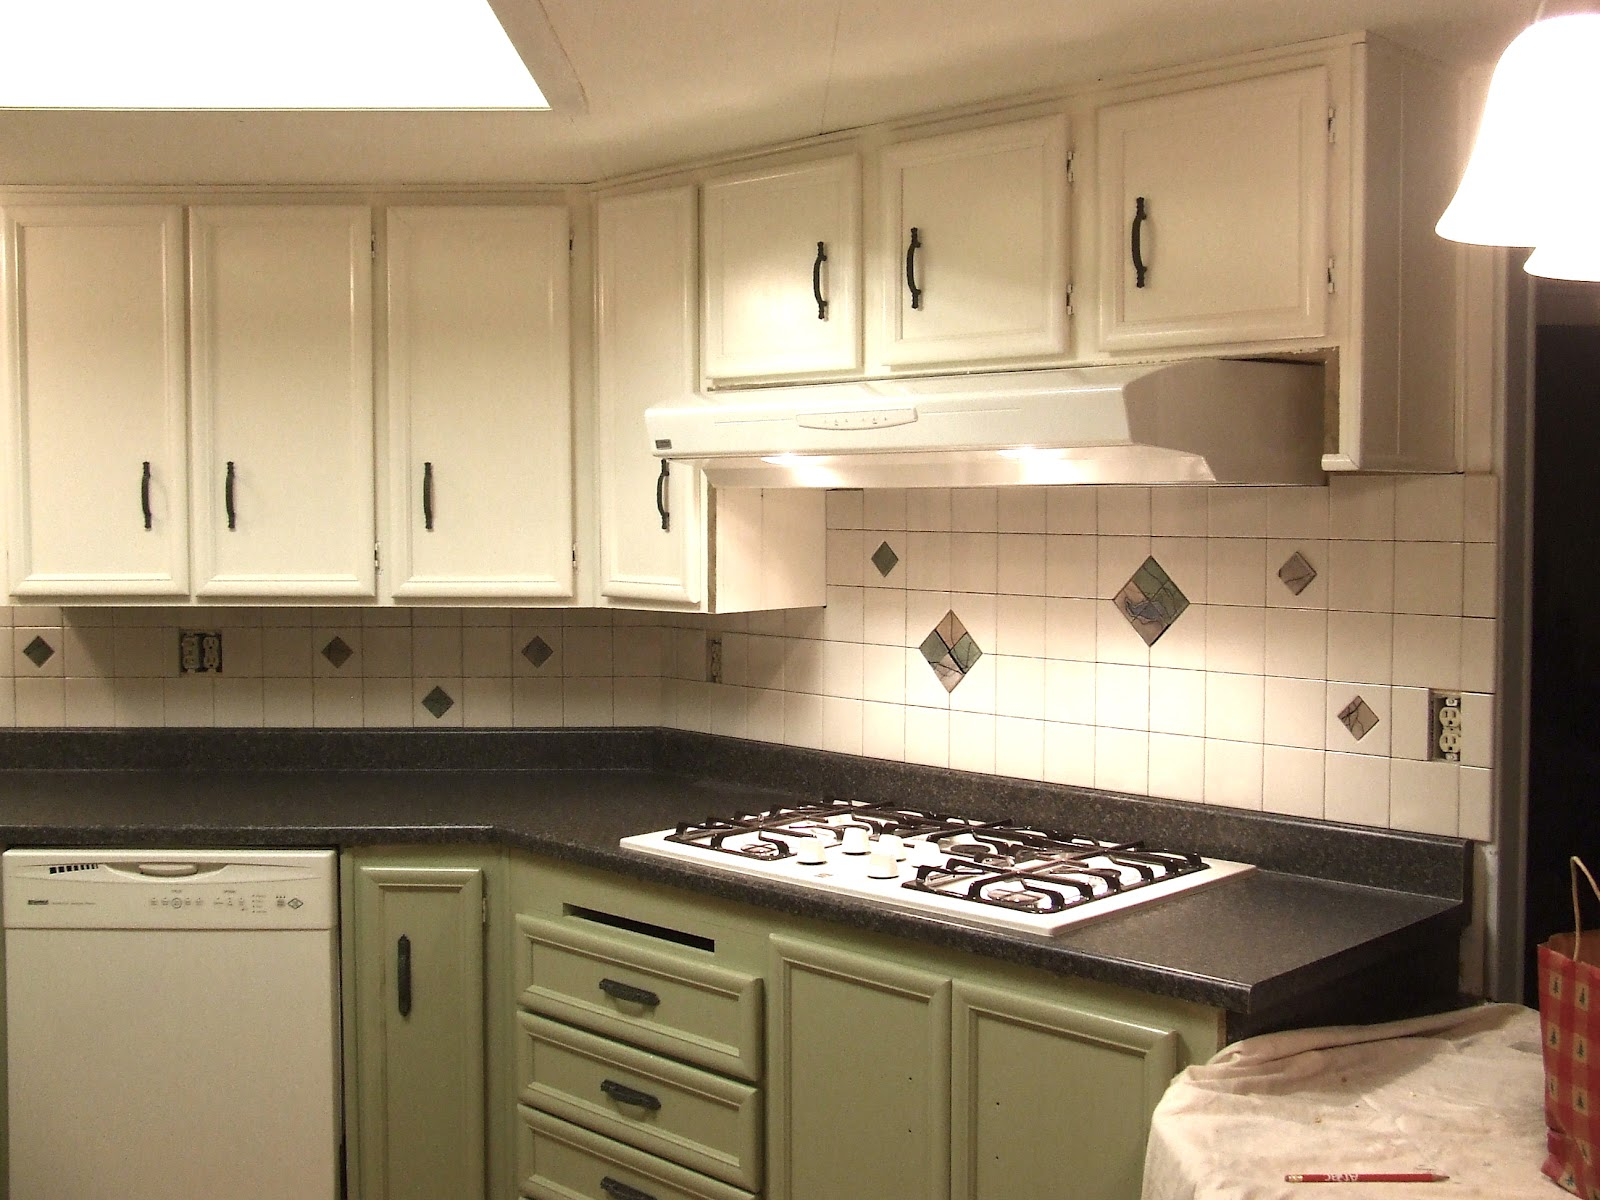 All three of these kitchens were done on a, shall we say, tight budget